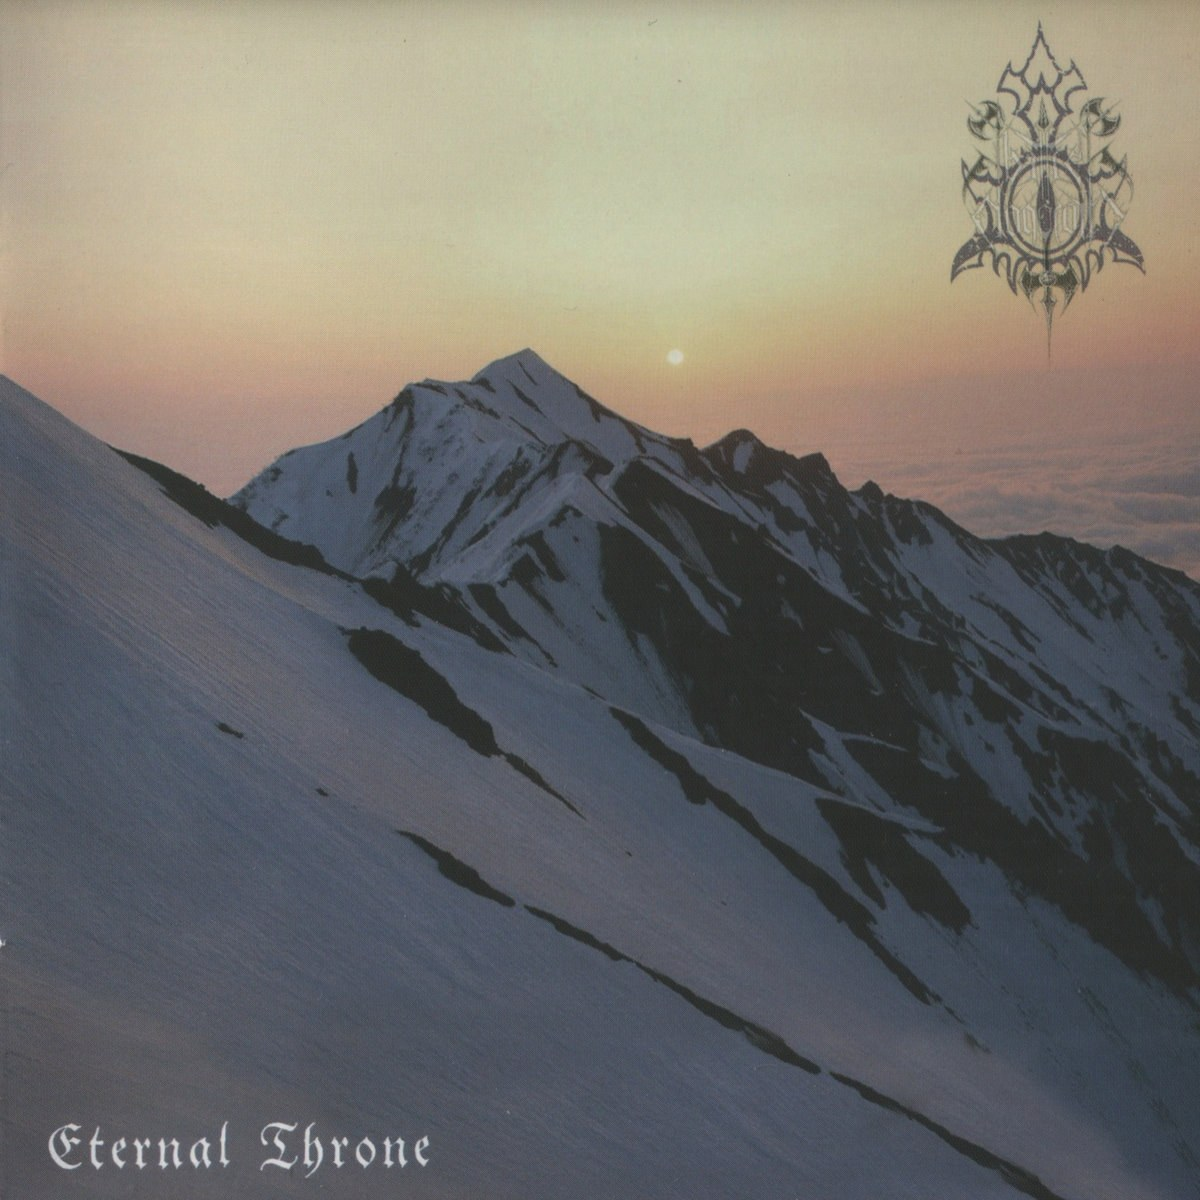 Review for Battle Dagorath - Eternal Throne